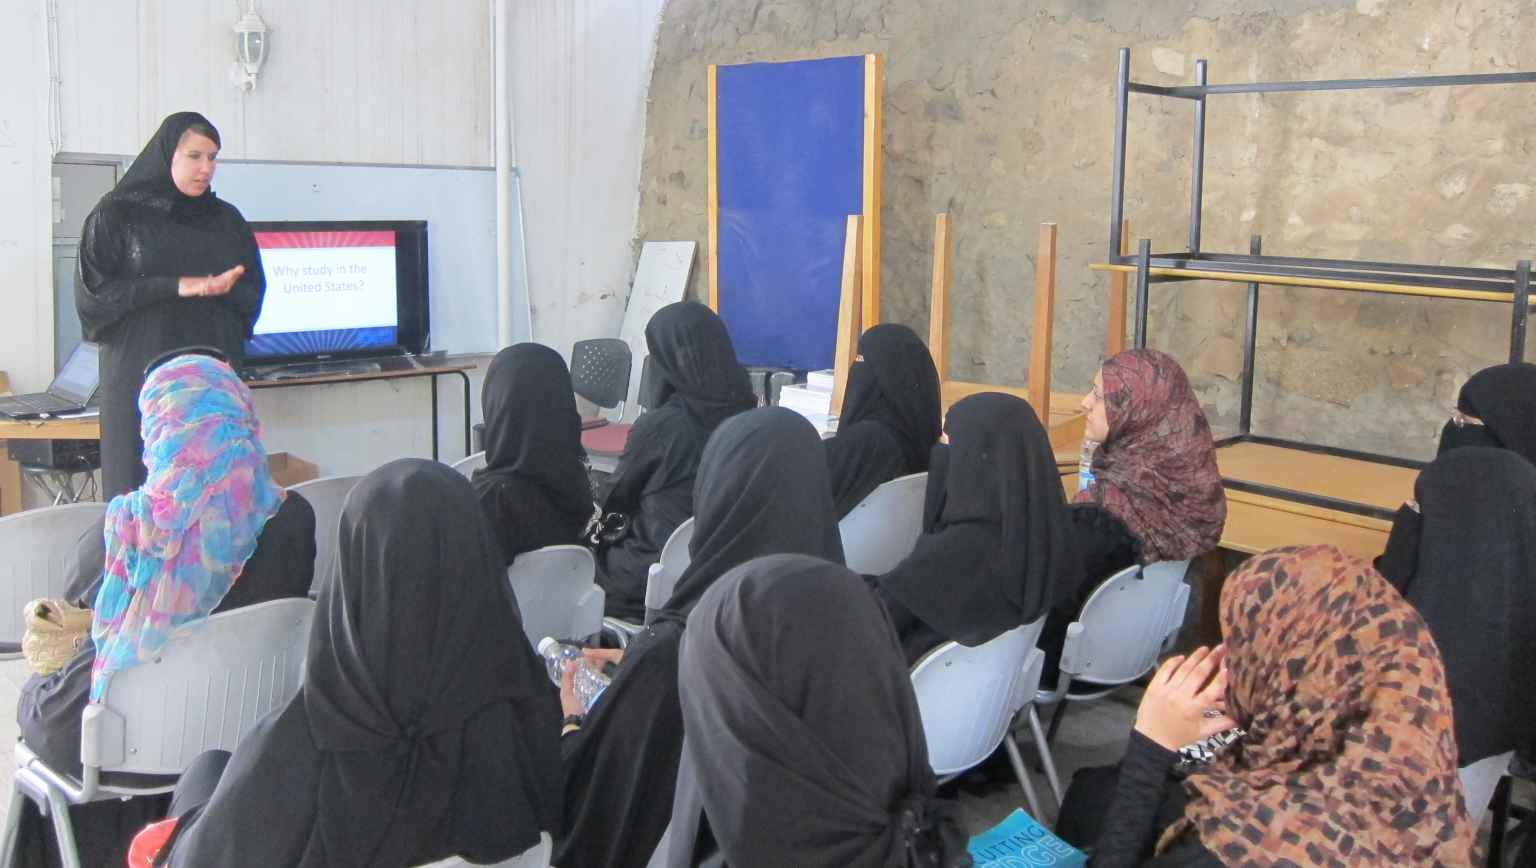 Female students in Sanna, Yemen gather for an Education USA information session